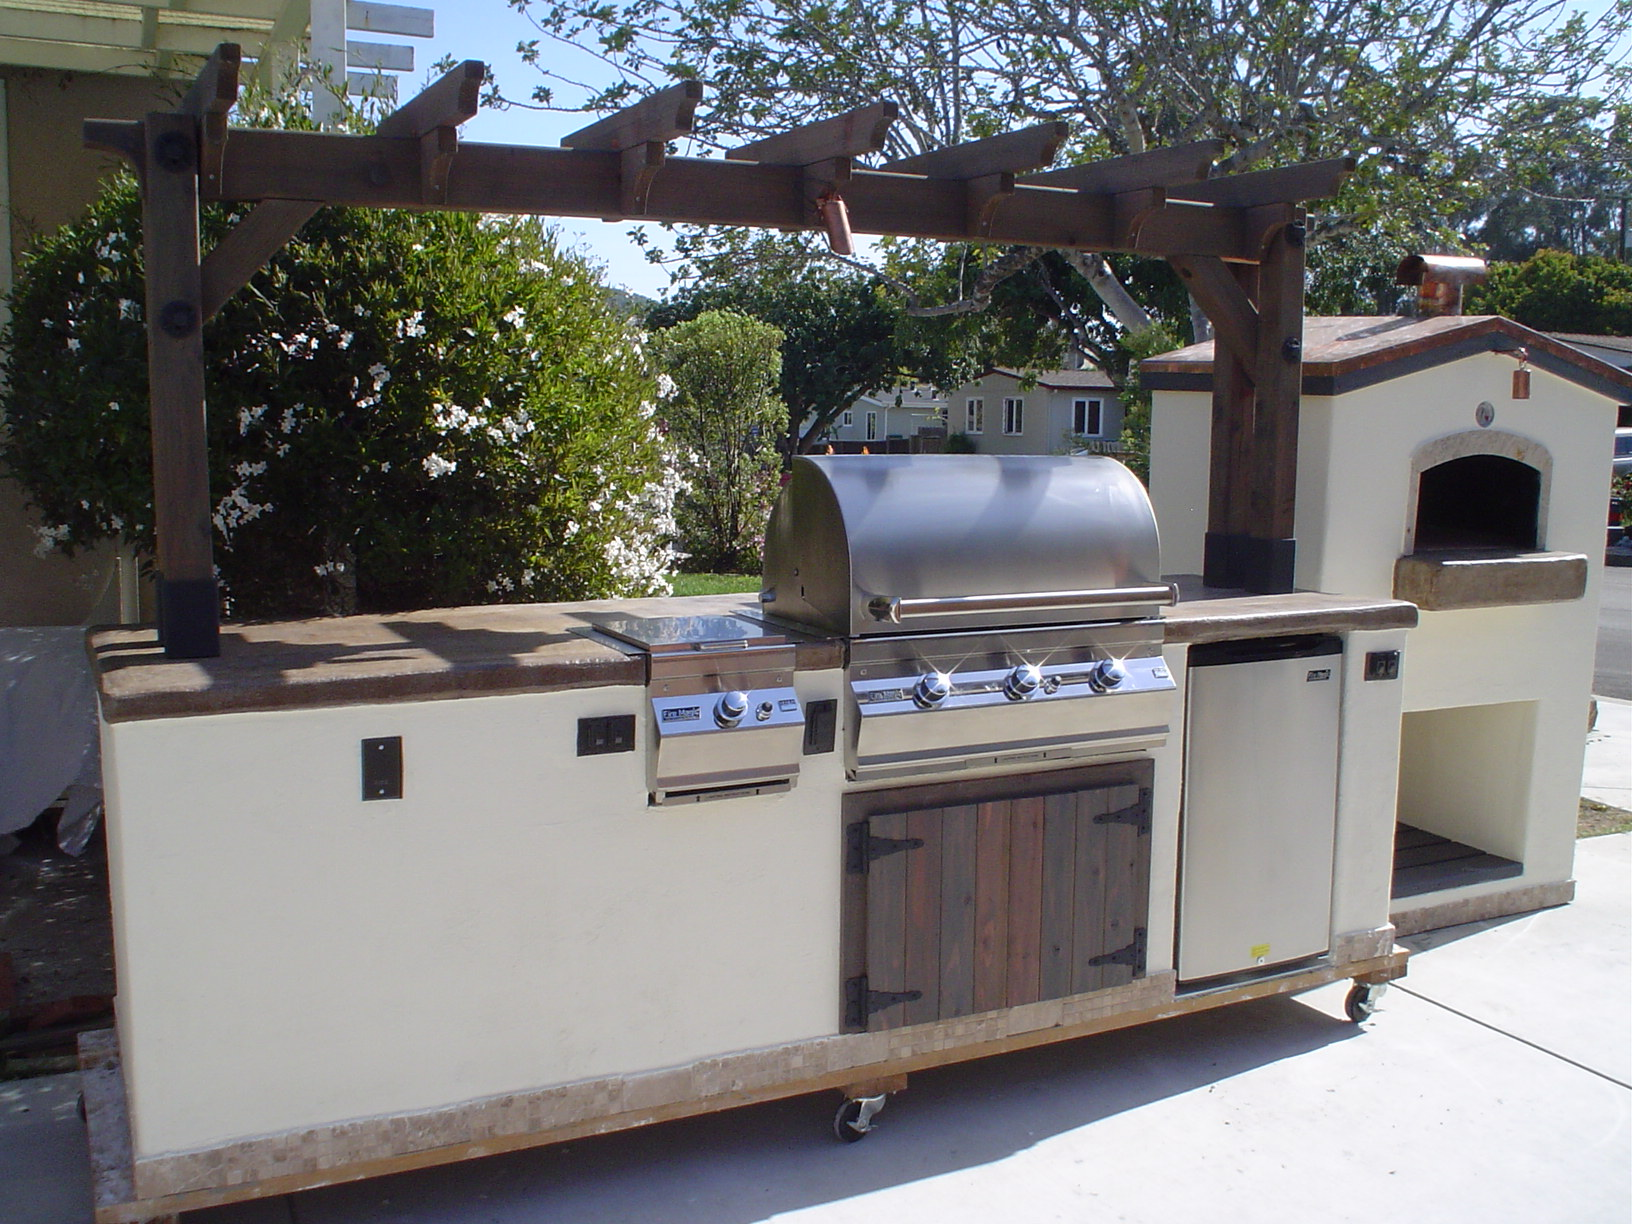 10 outdoor kitchen featuring a trellis w pizza oven leasure concepts - Outdoor kitchen designs with pizza oven ...